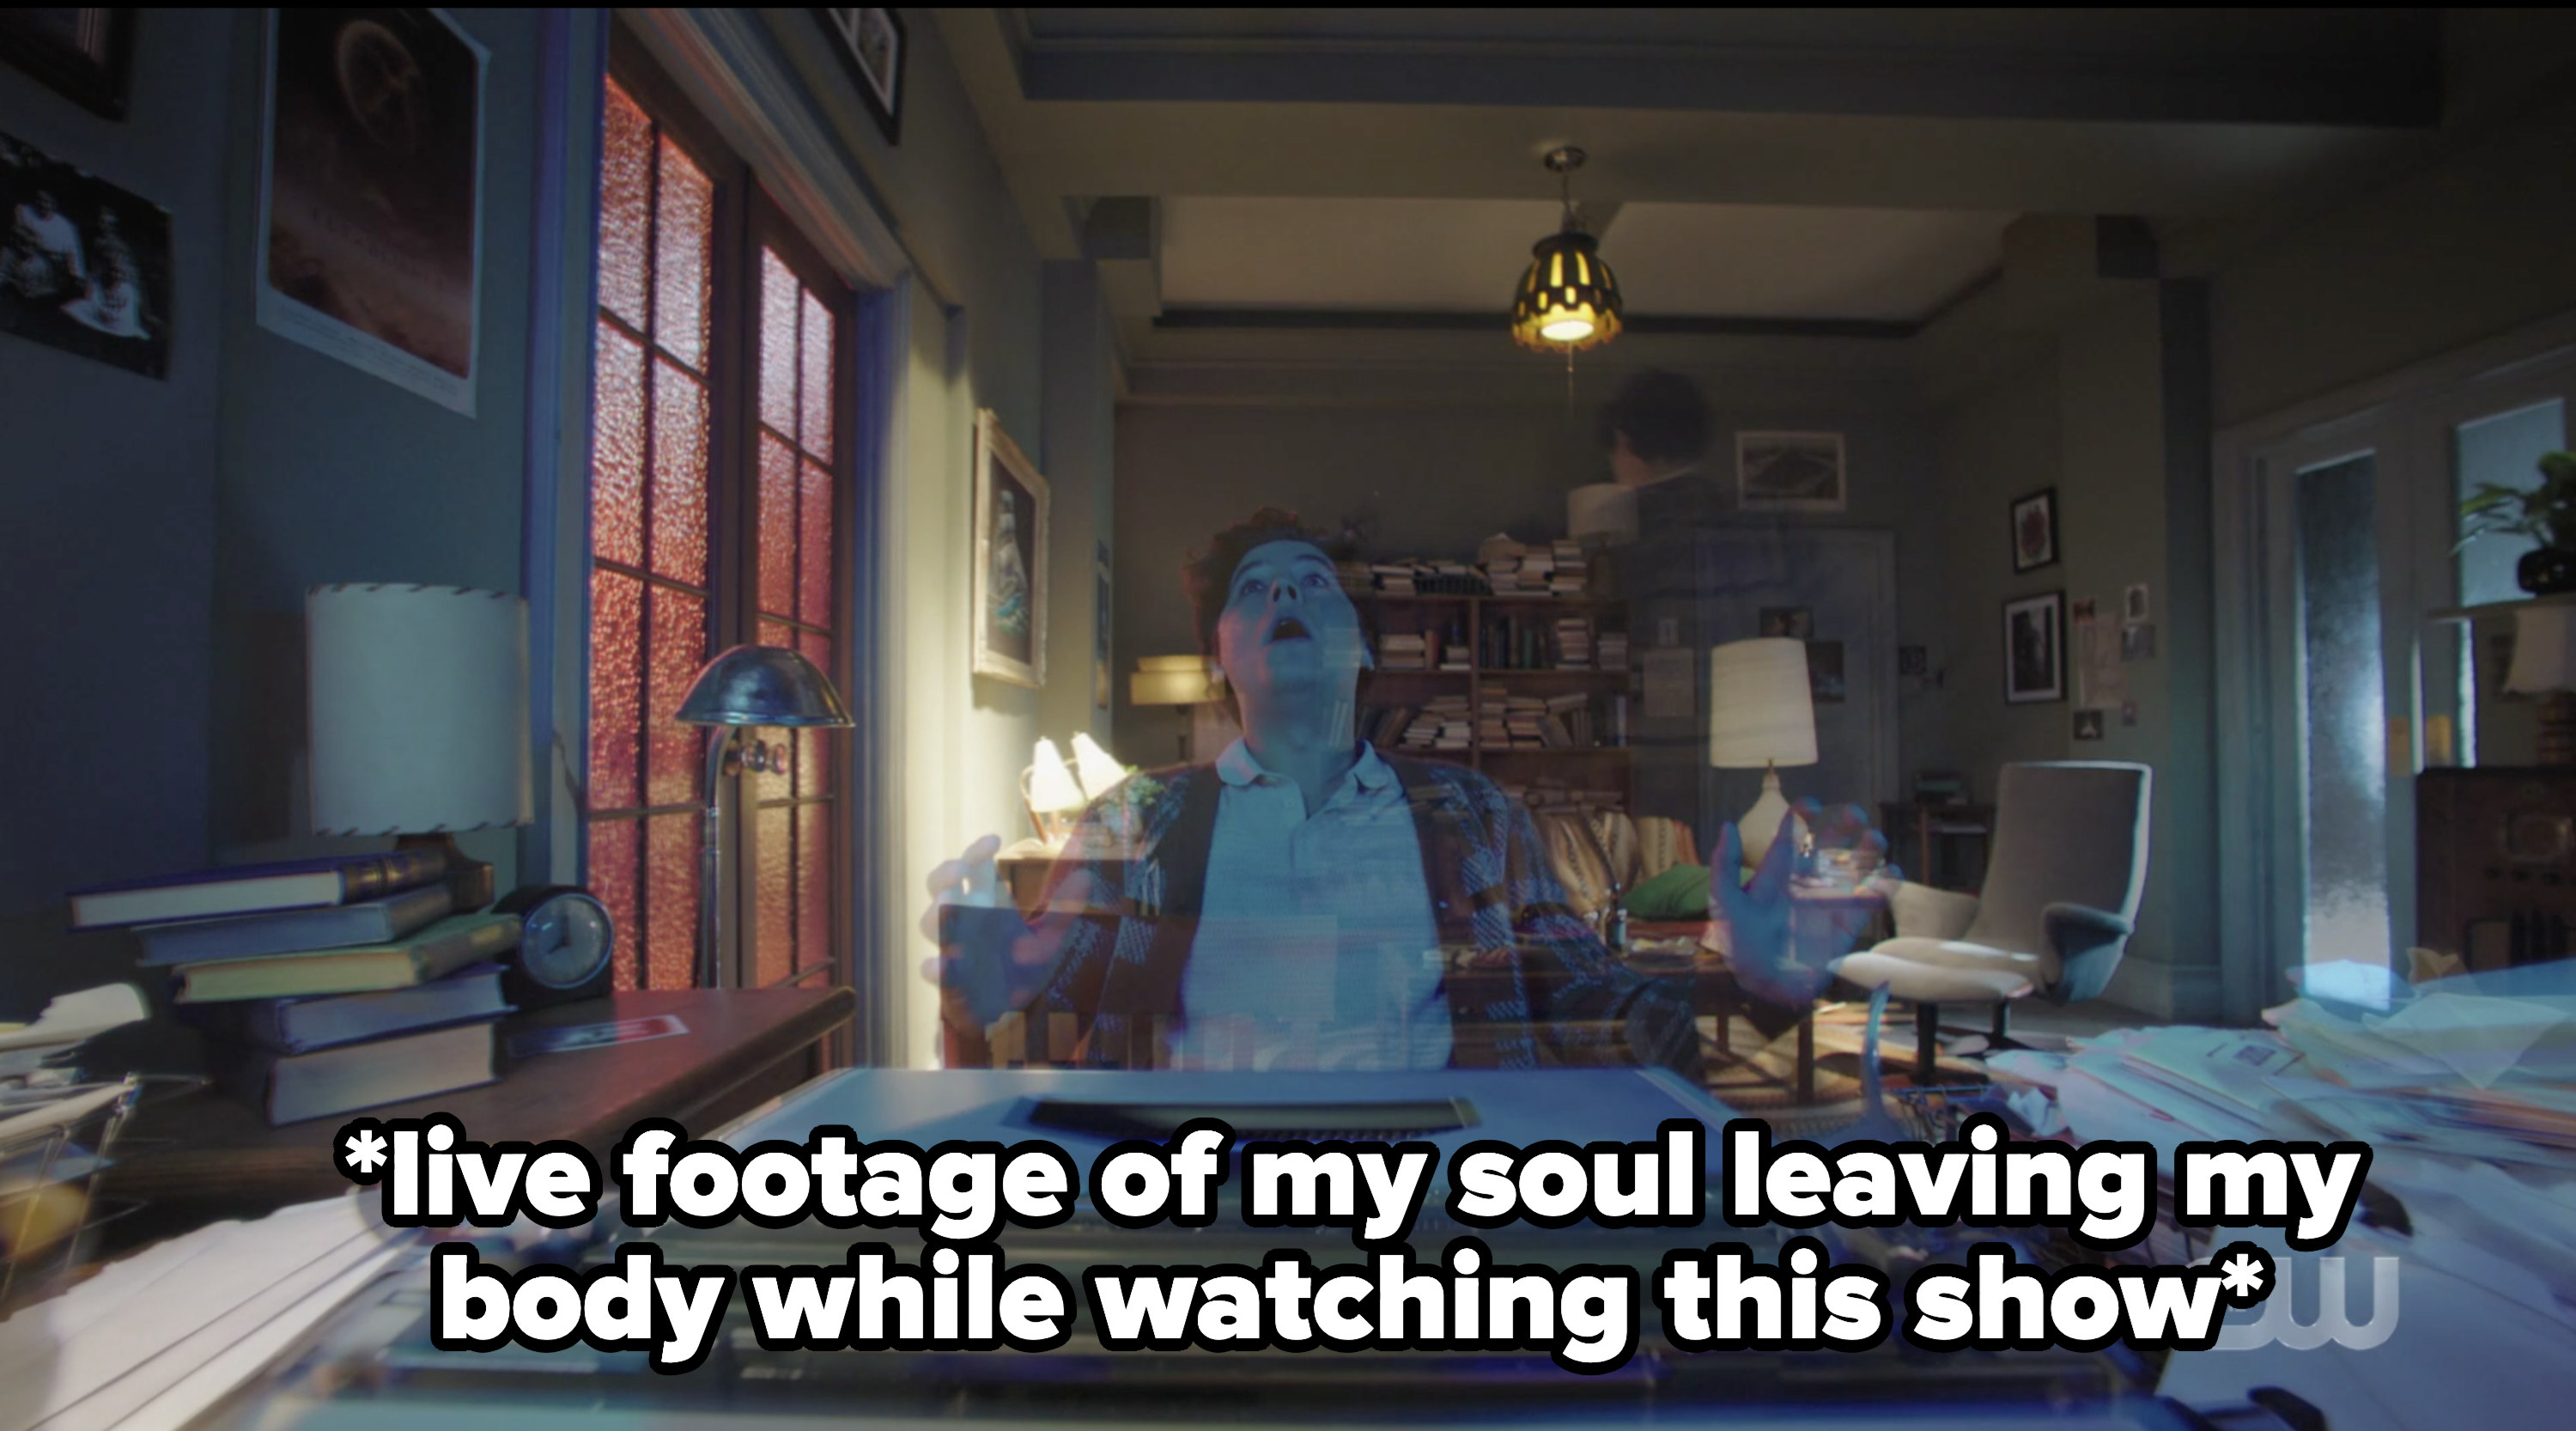 Jughead hallucinating with the caption live footage of my soul leaving my body while watching this show